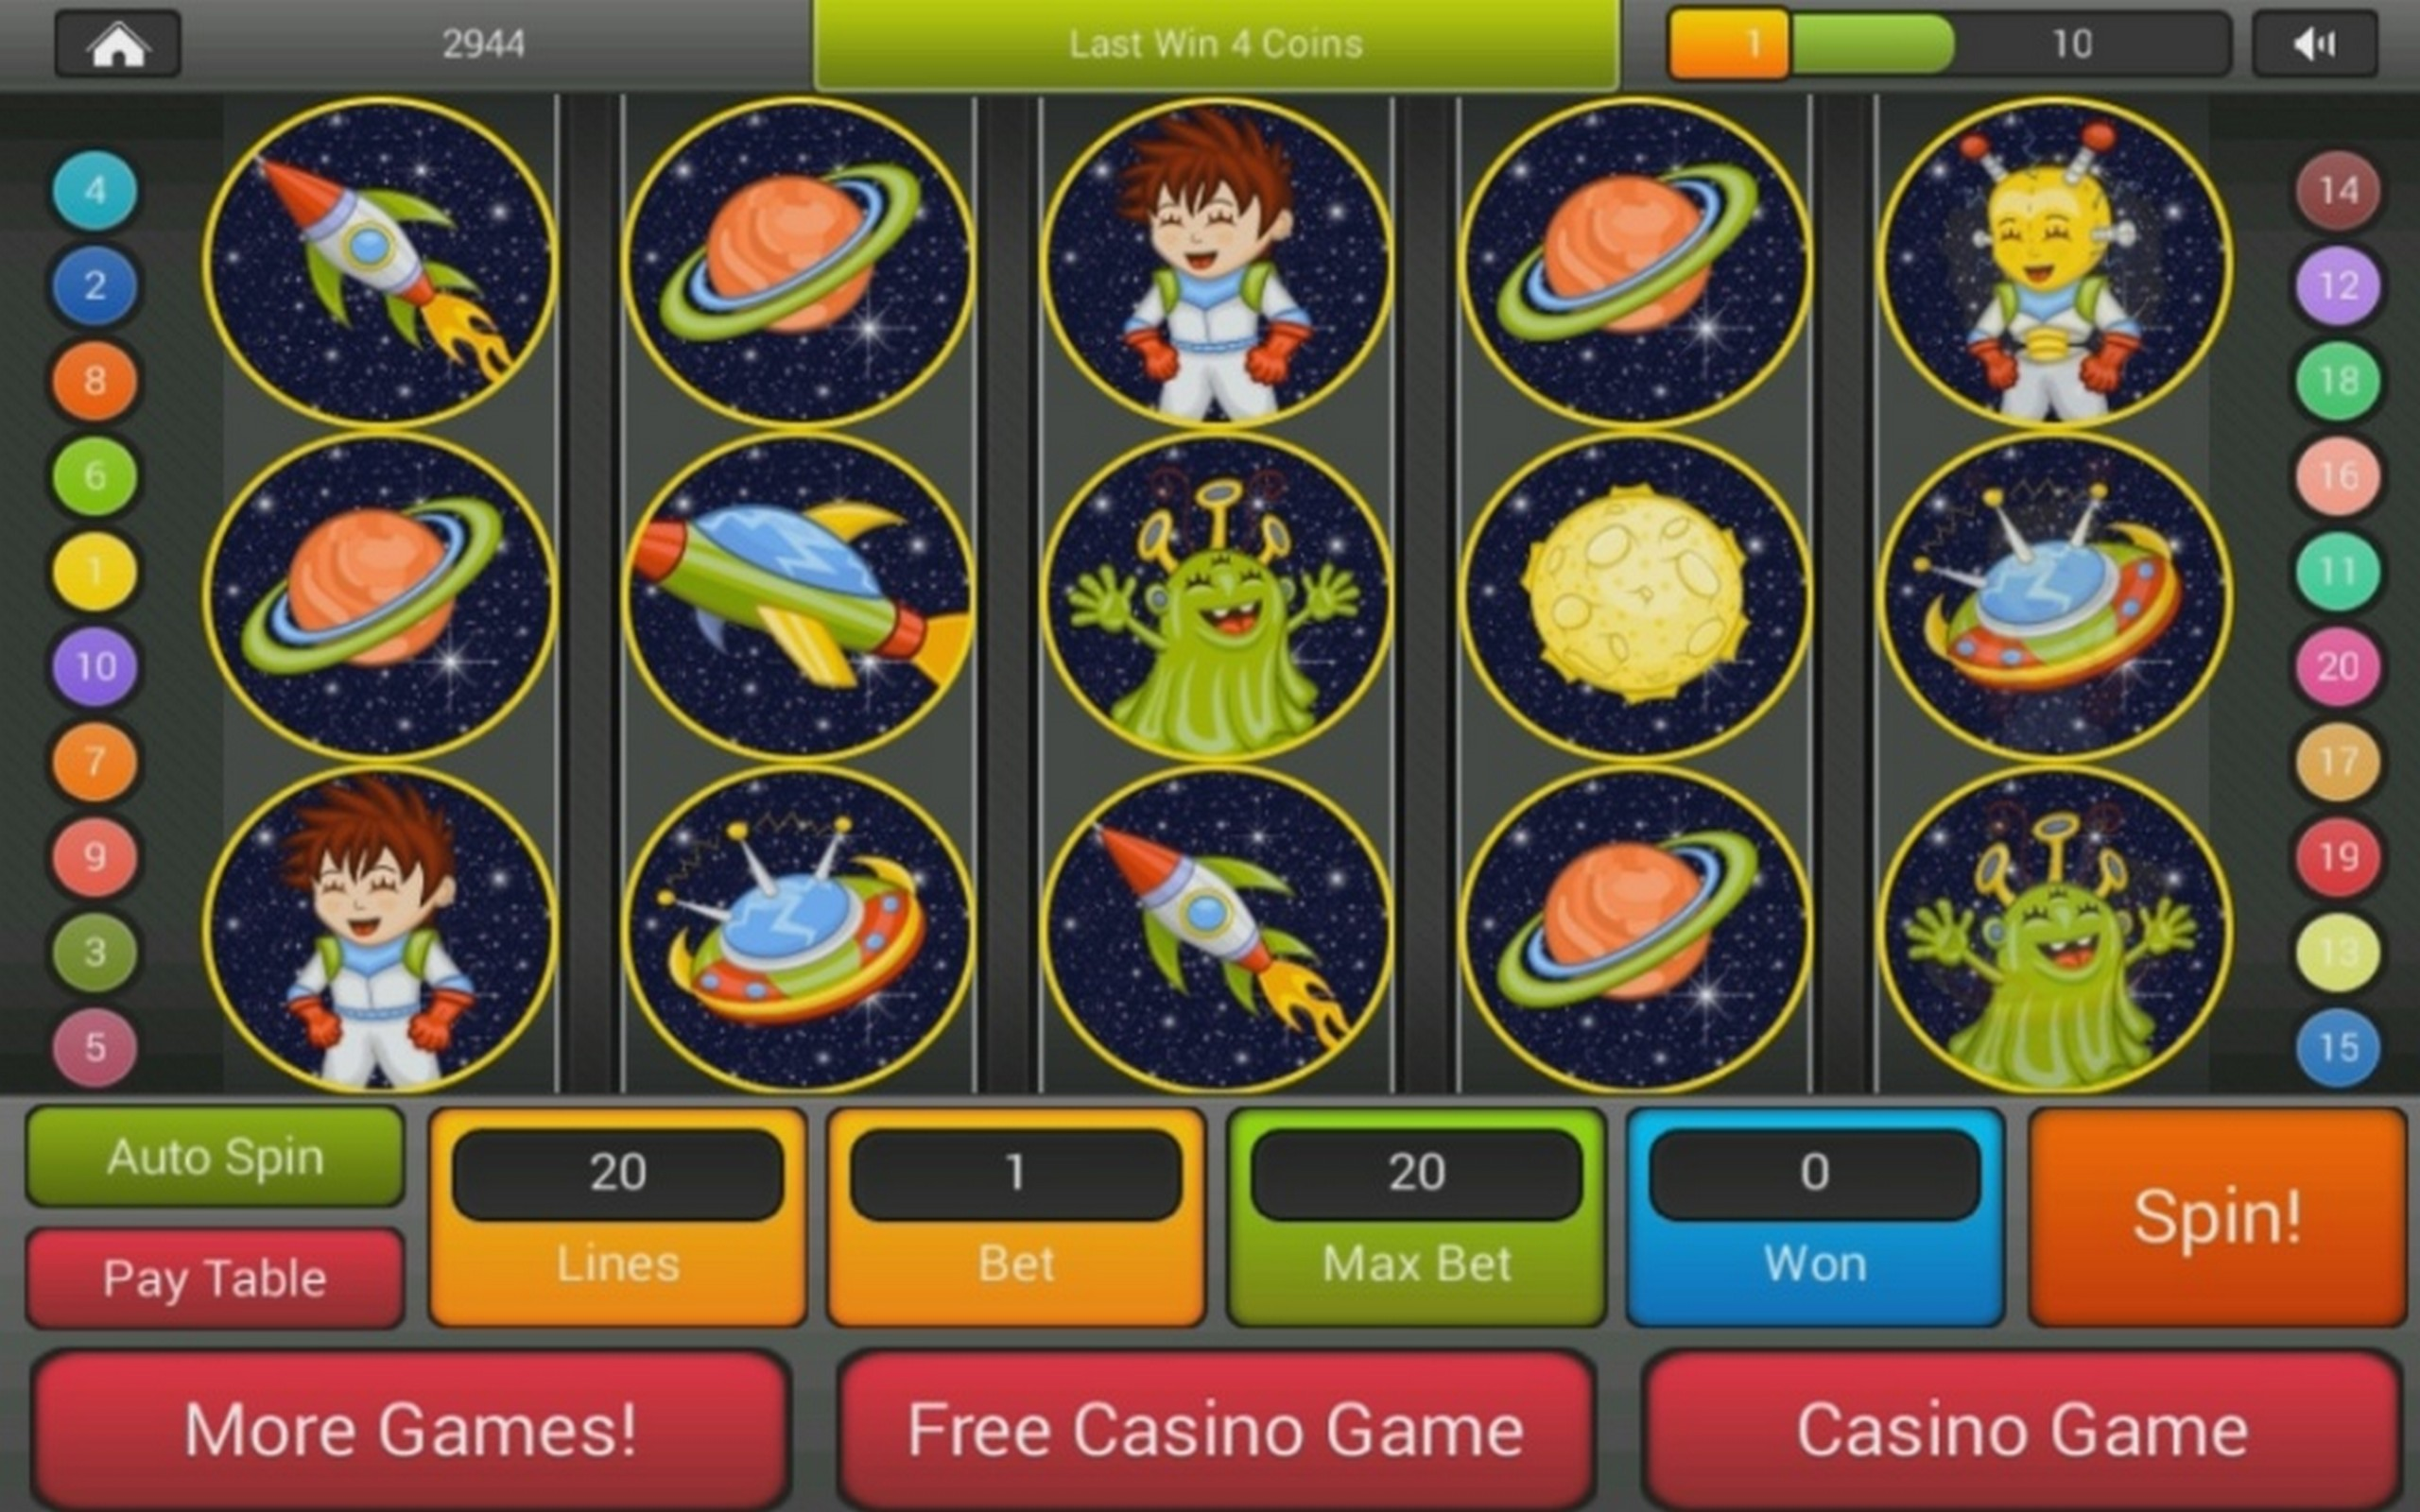 Alien Slots | Play FREE Alien-themed Slot Machine Games